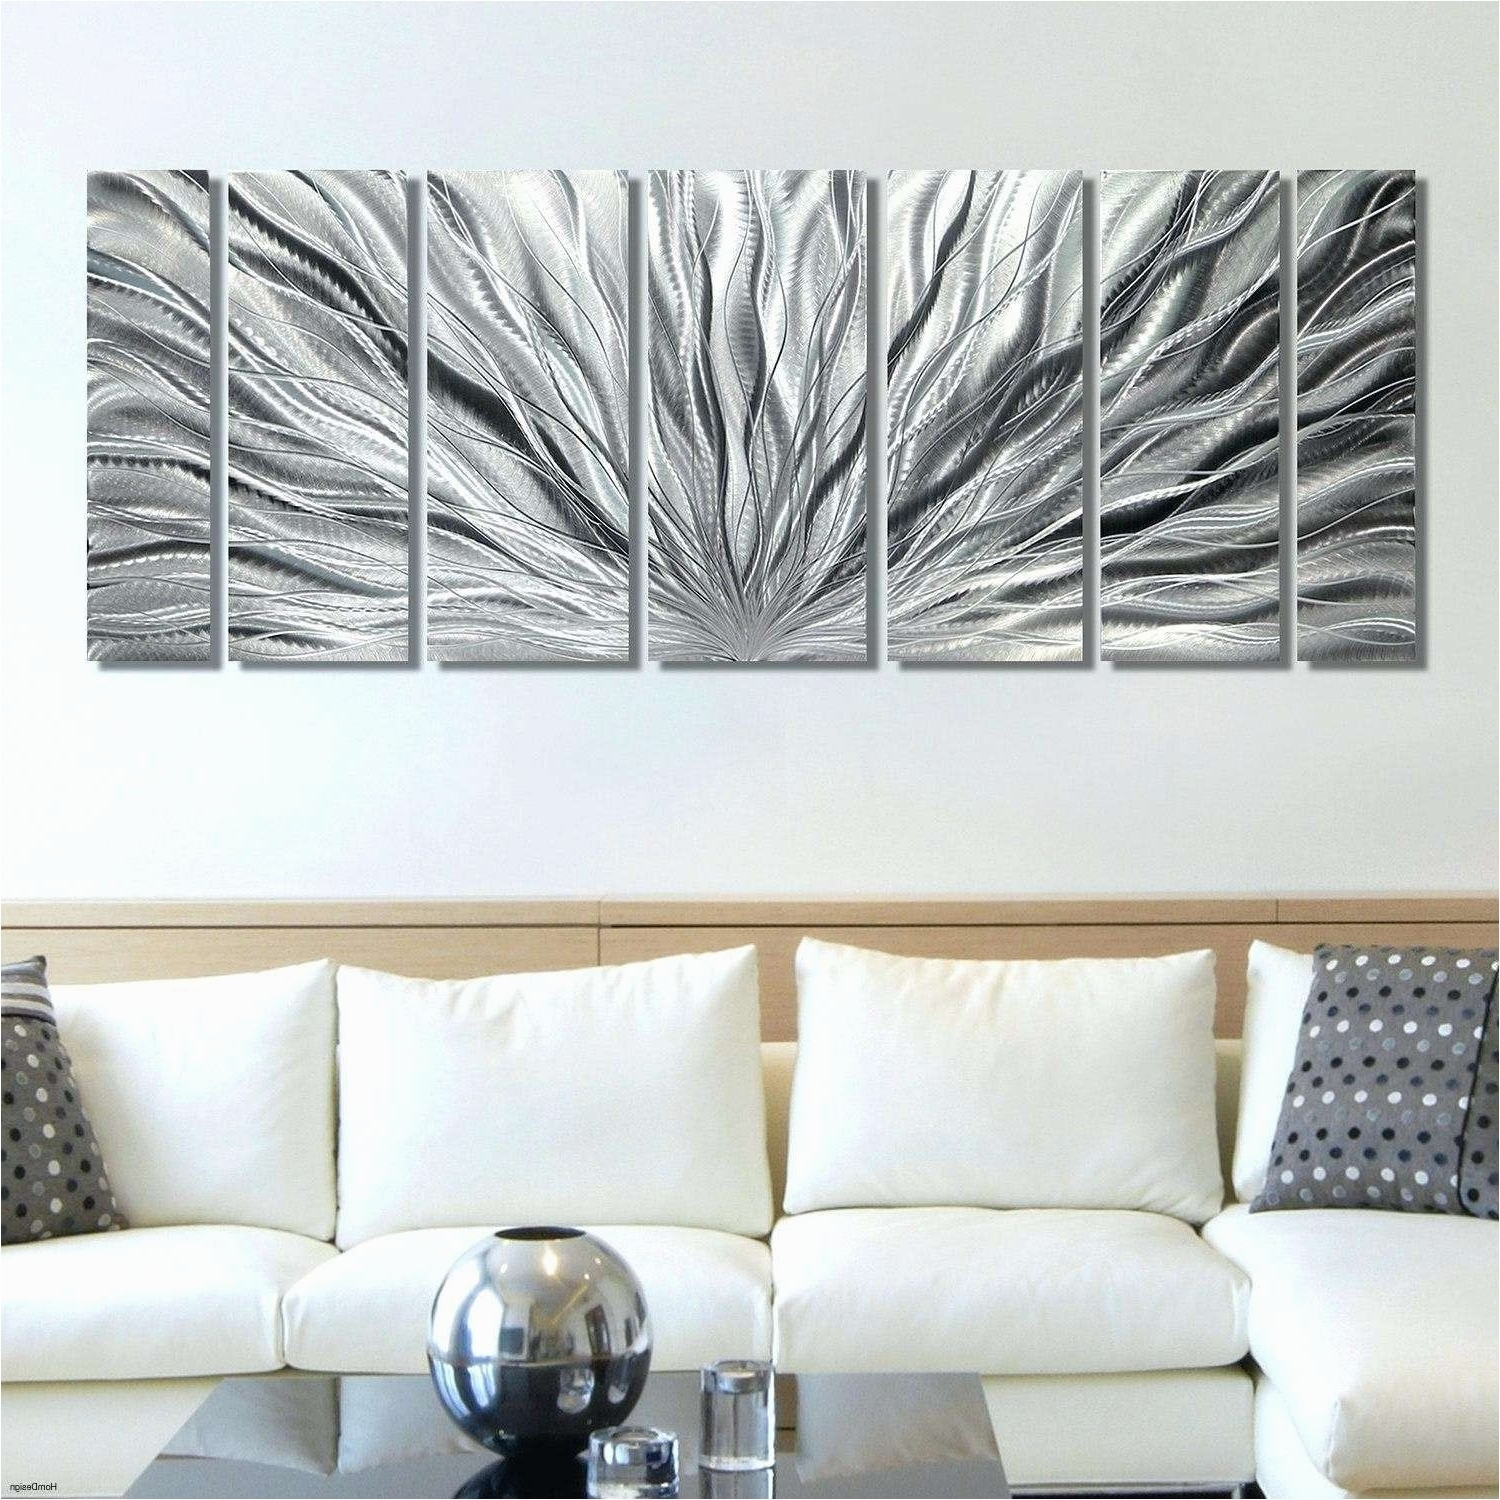 Well Known Corner Wall Art For Living Room Corner Wall Decor Luxury Wall Art For Living Room Ideas (View 19 of 20)